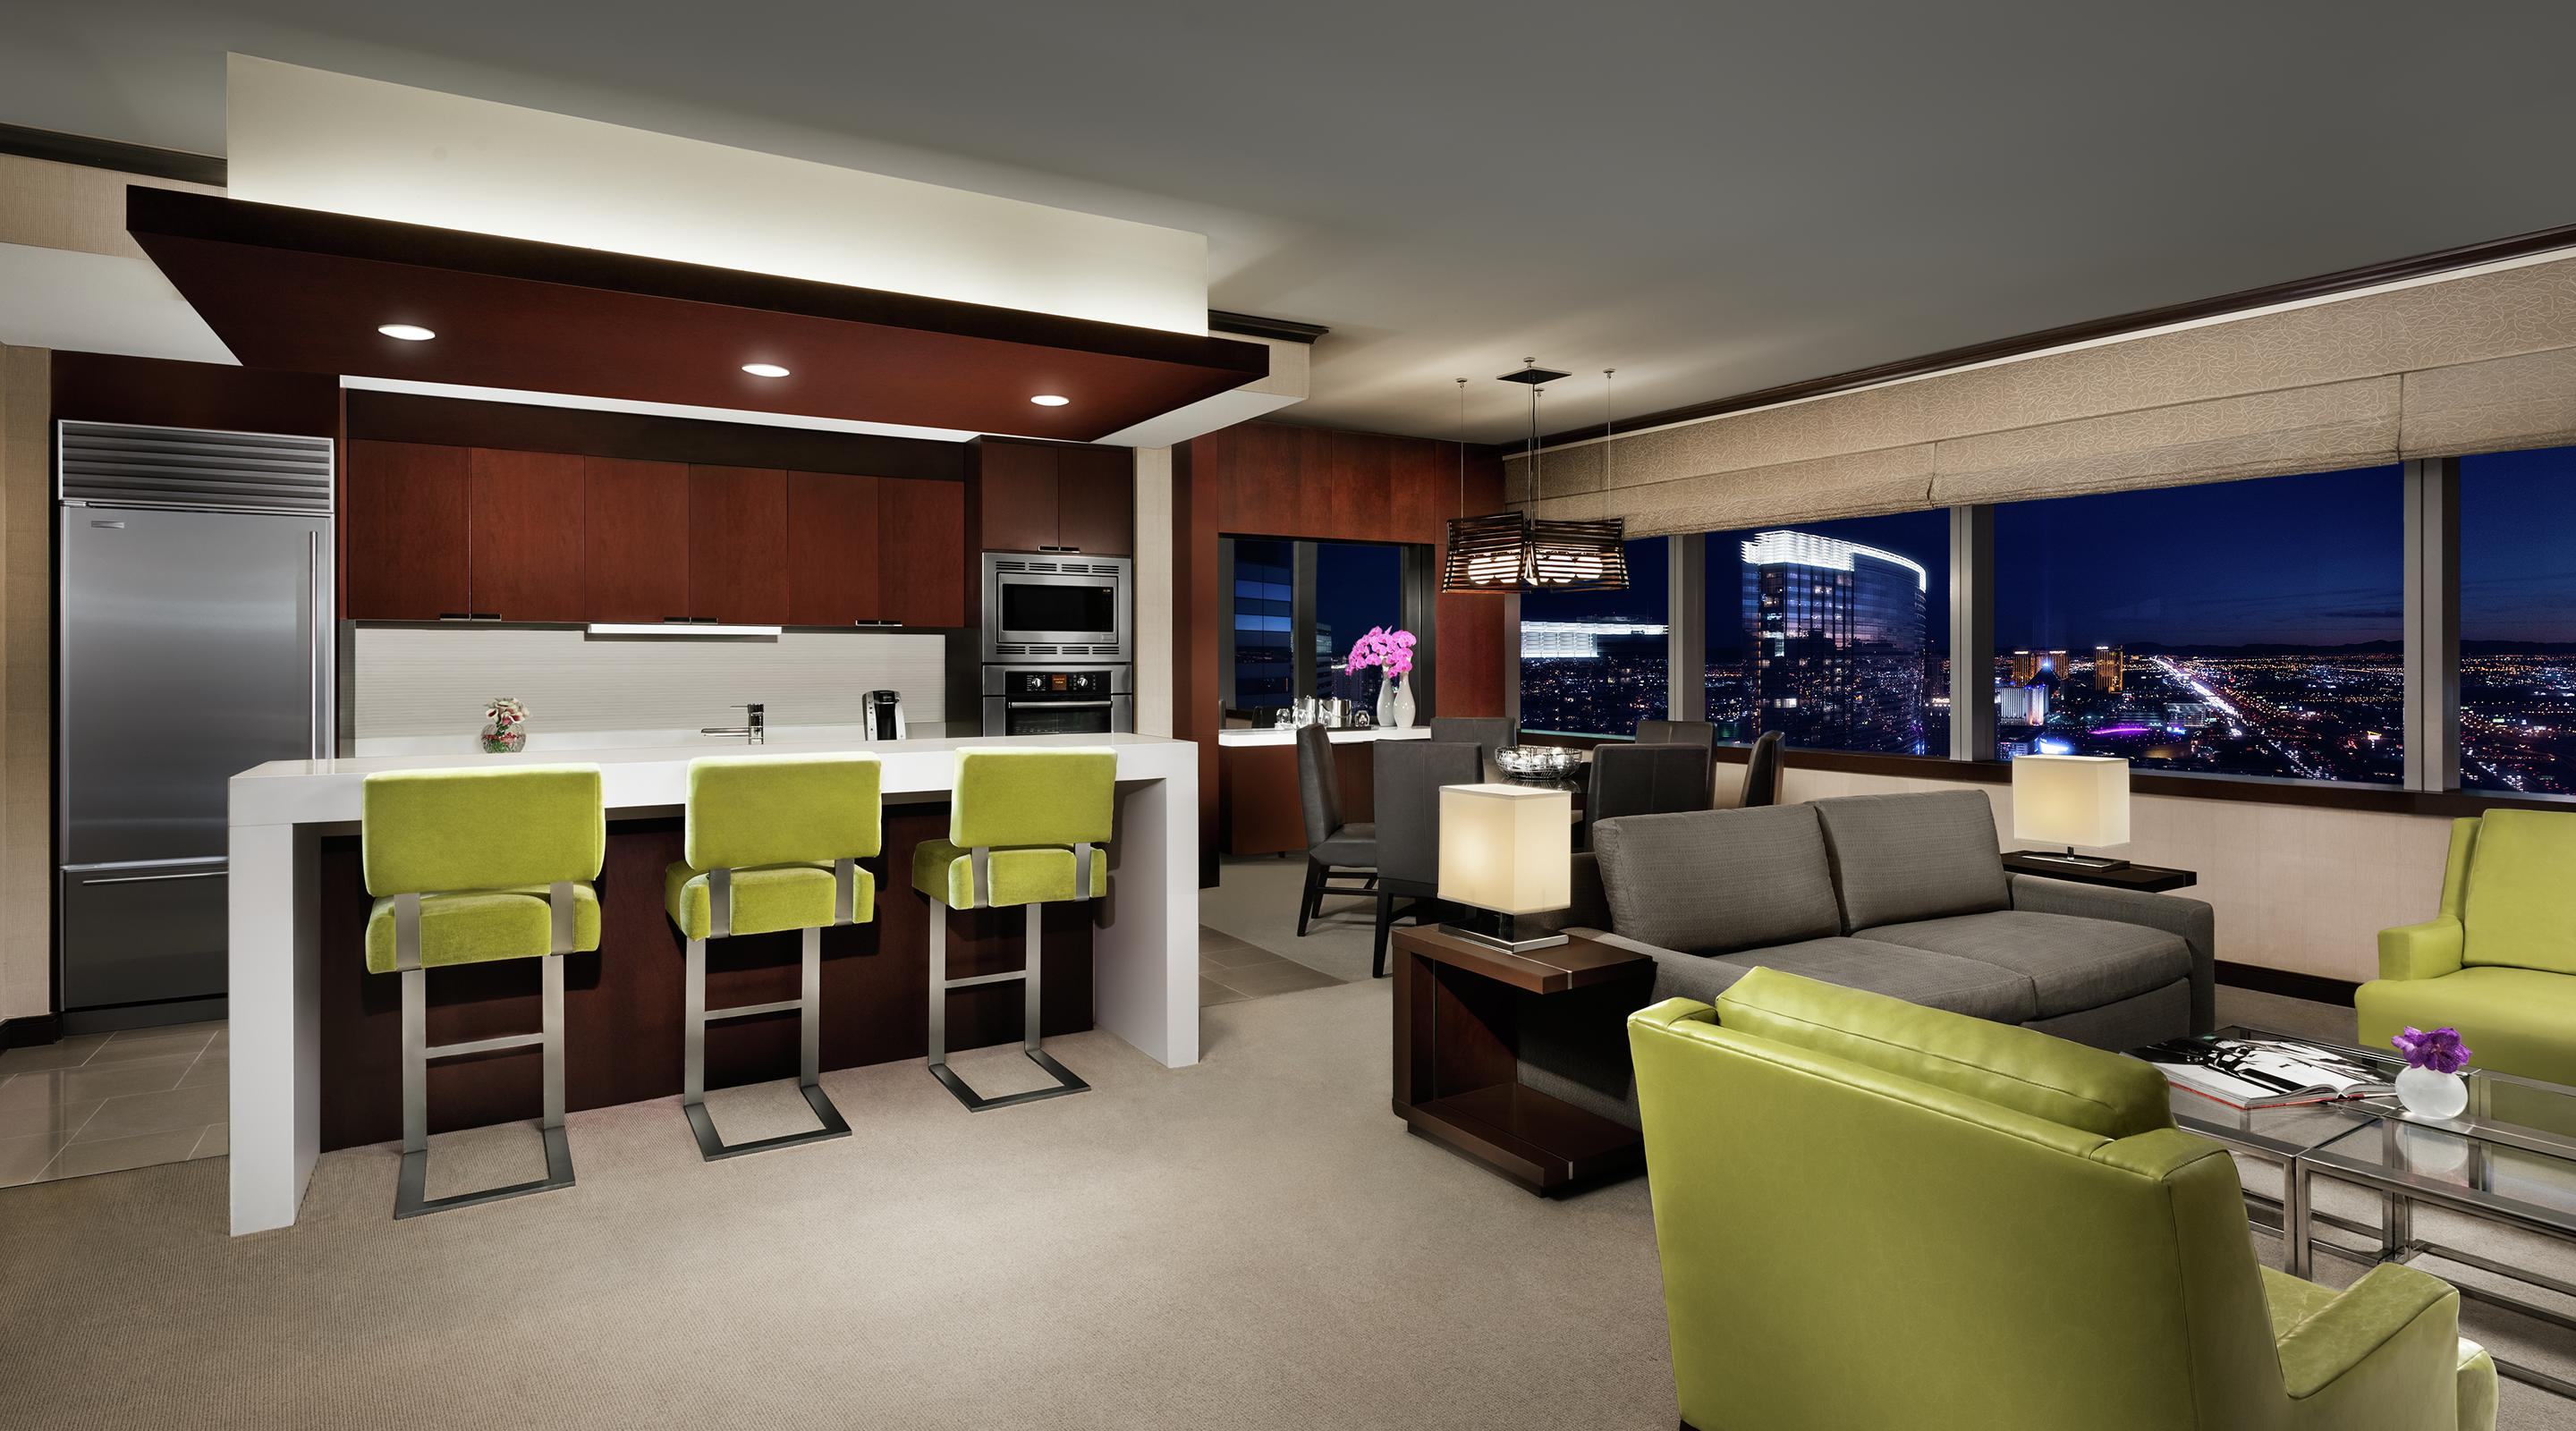 Whether you are entertaining for business or pleasure, our Two Bedroom Hospitality Suites provides the space and amenities necessary to ensure both you and your guests enjoy every second.